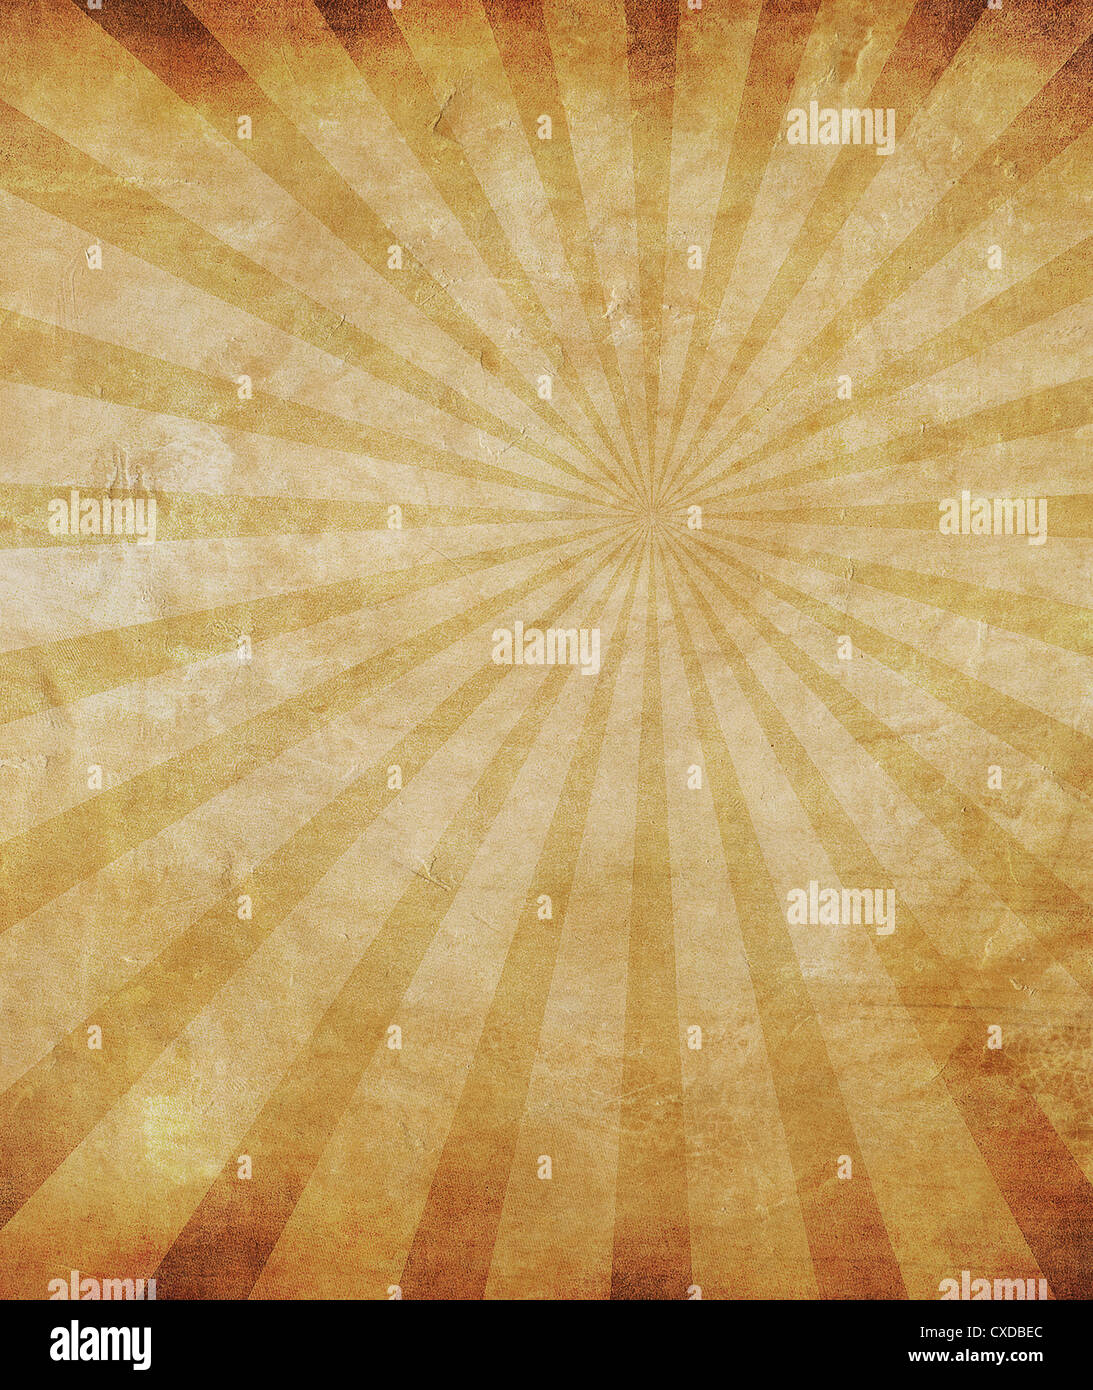 vintage paper - perfect textured background - Stock Image